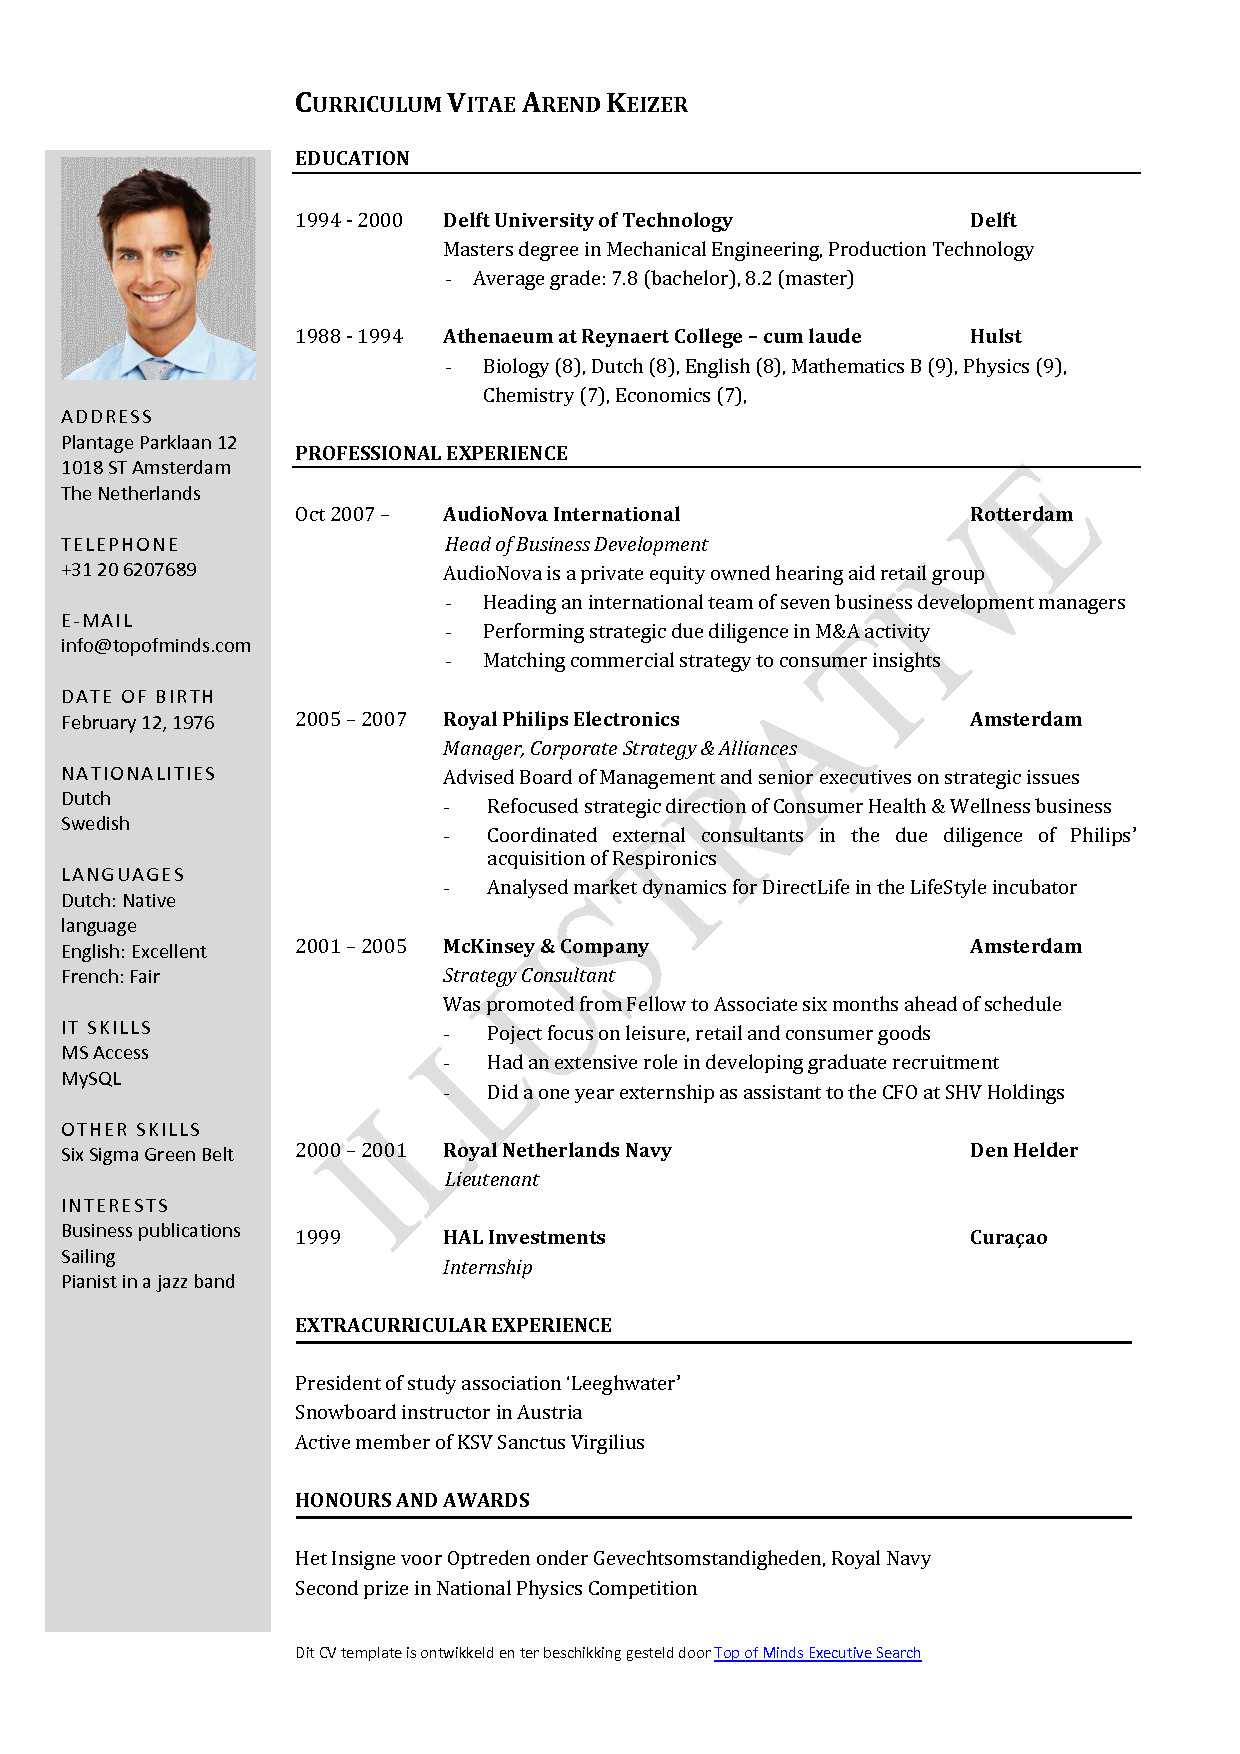 Resume Templates In Word Free Curriculum Vitae Template Word